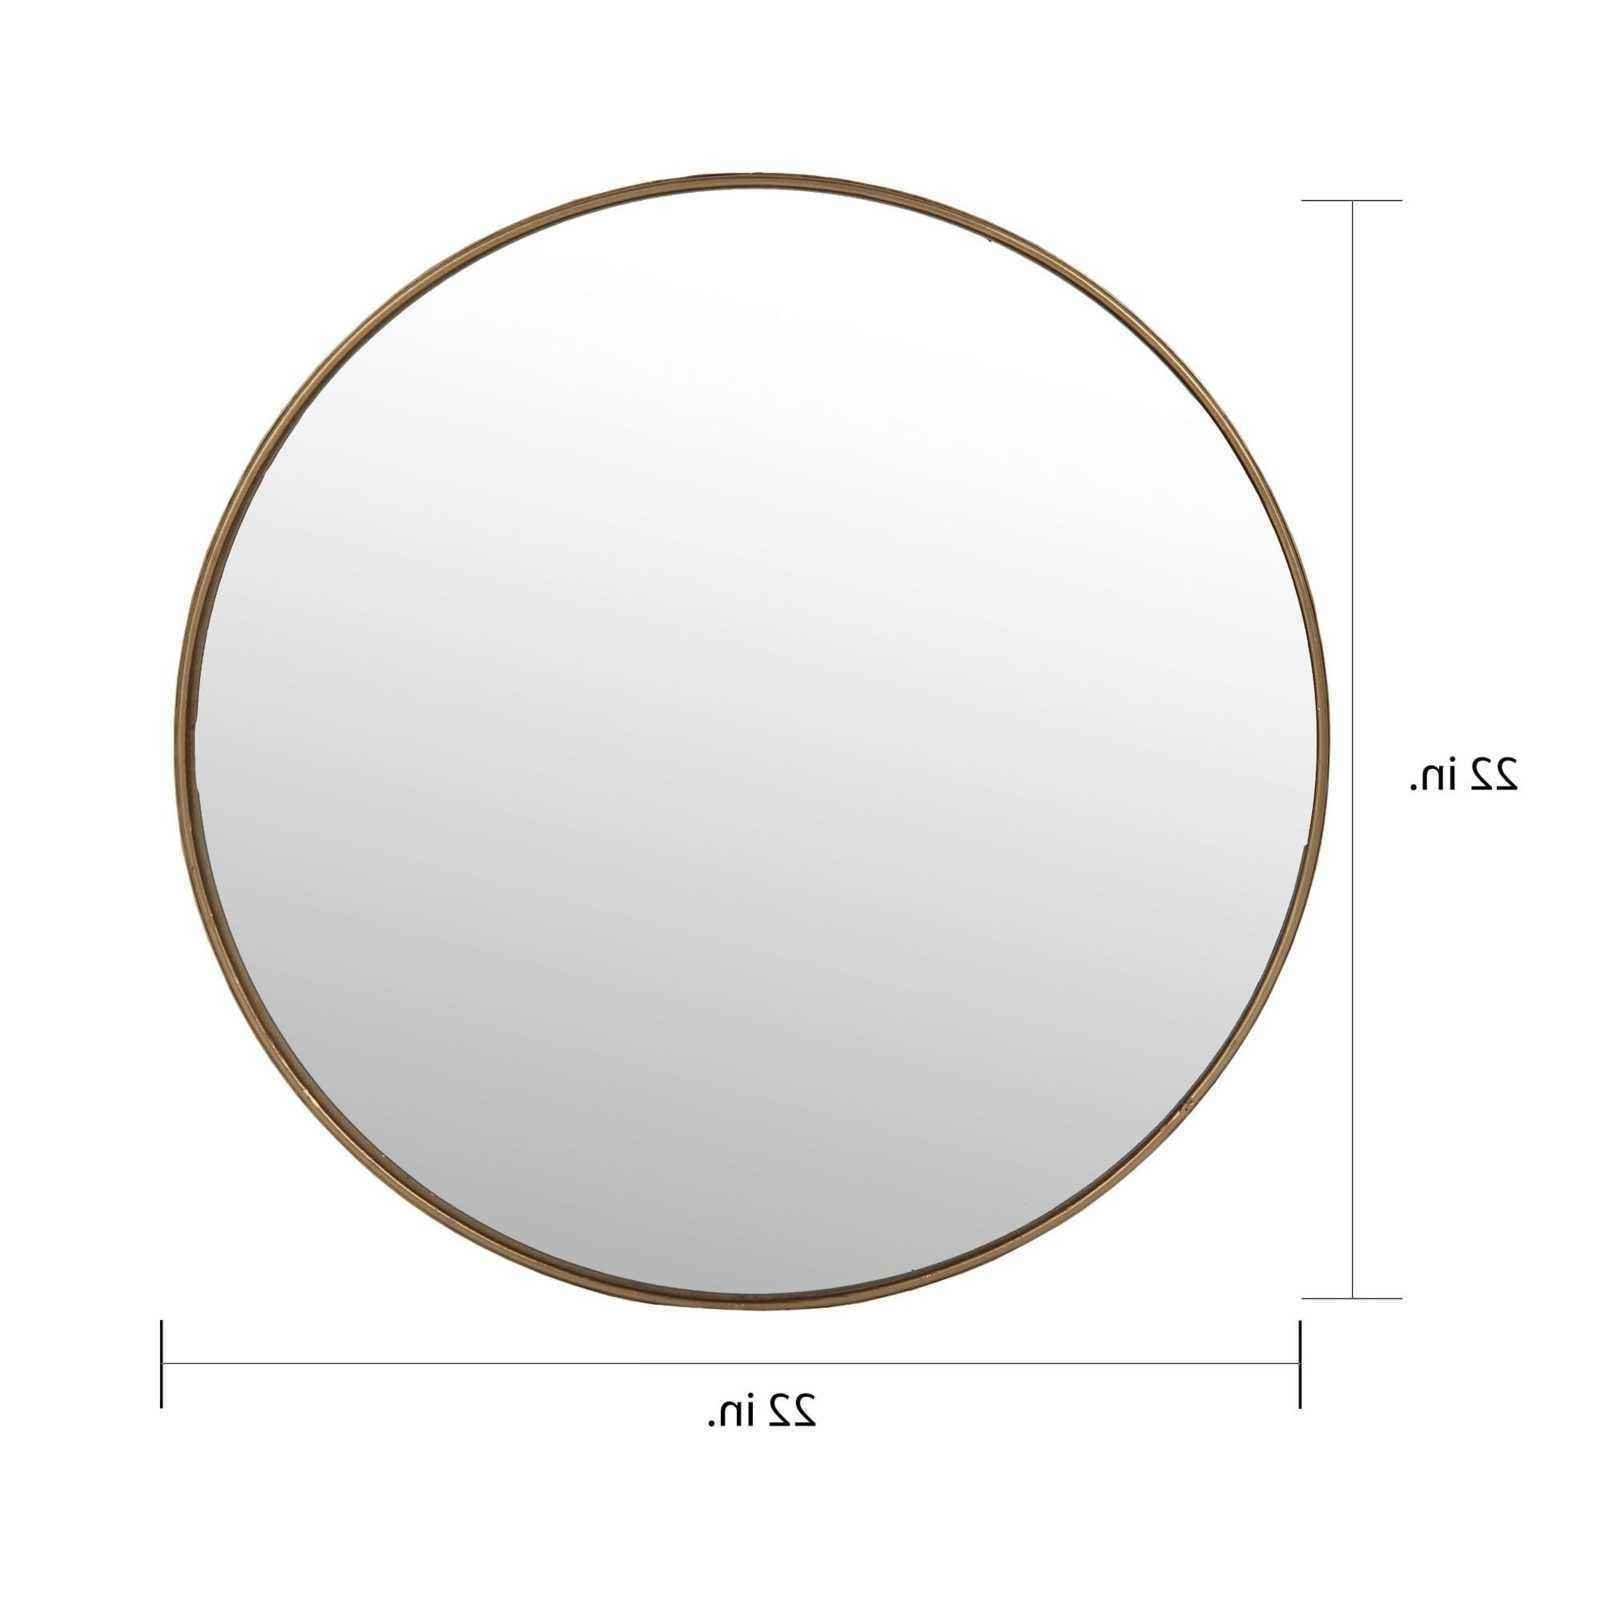 Large Round Wall Mirror Gold Frame Wall Mounted Vertical Orientation 15'' 32'' H Throughout Popular Vertical Round Wall Mirrors (Gallery 7 of 20)